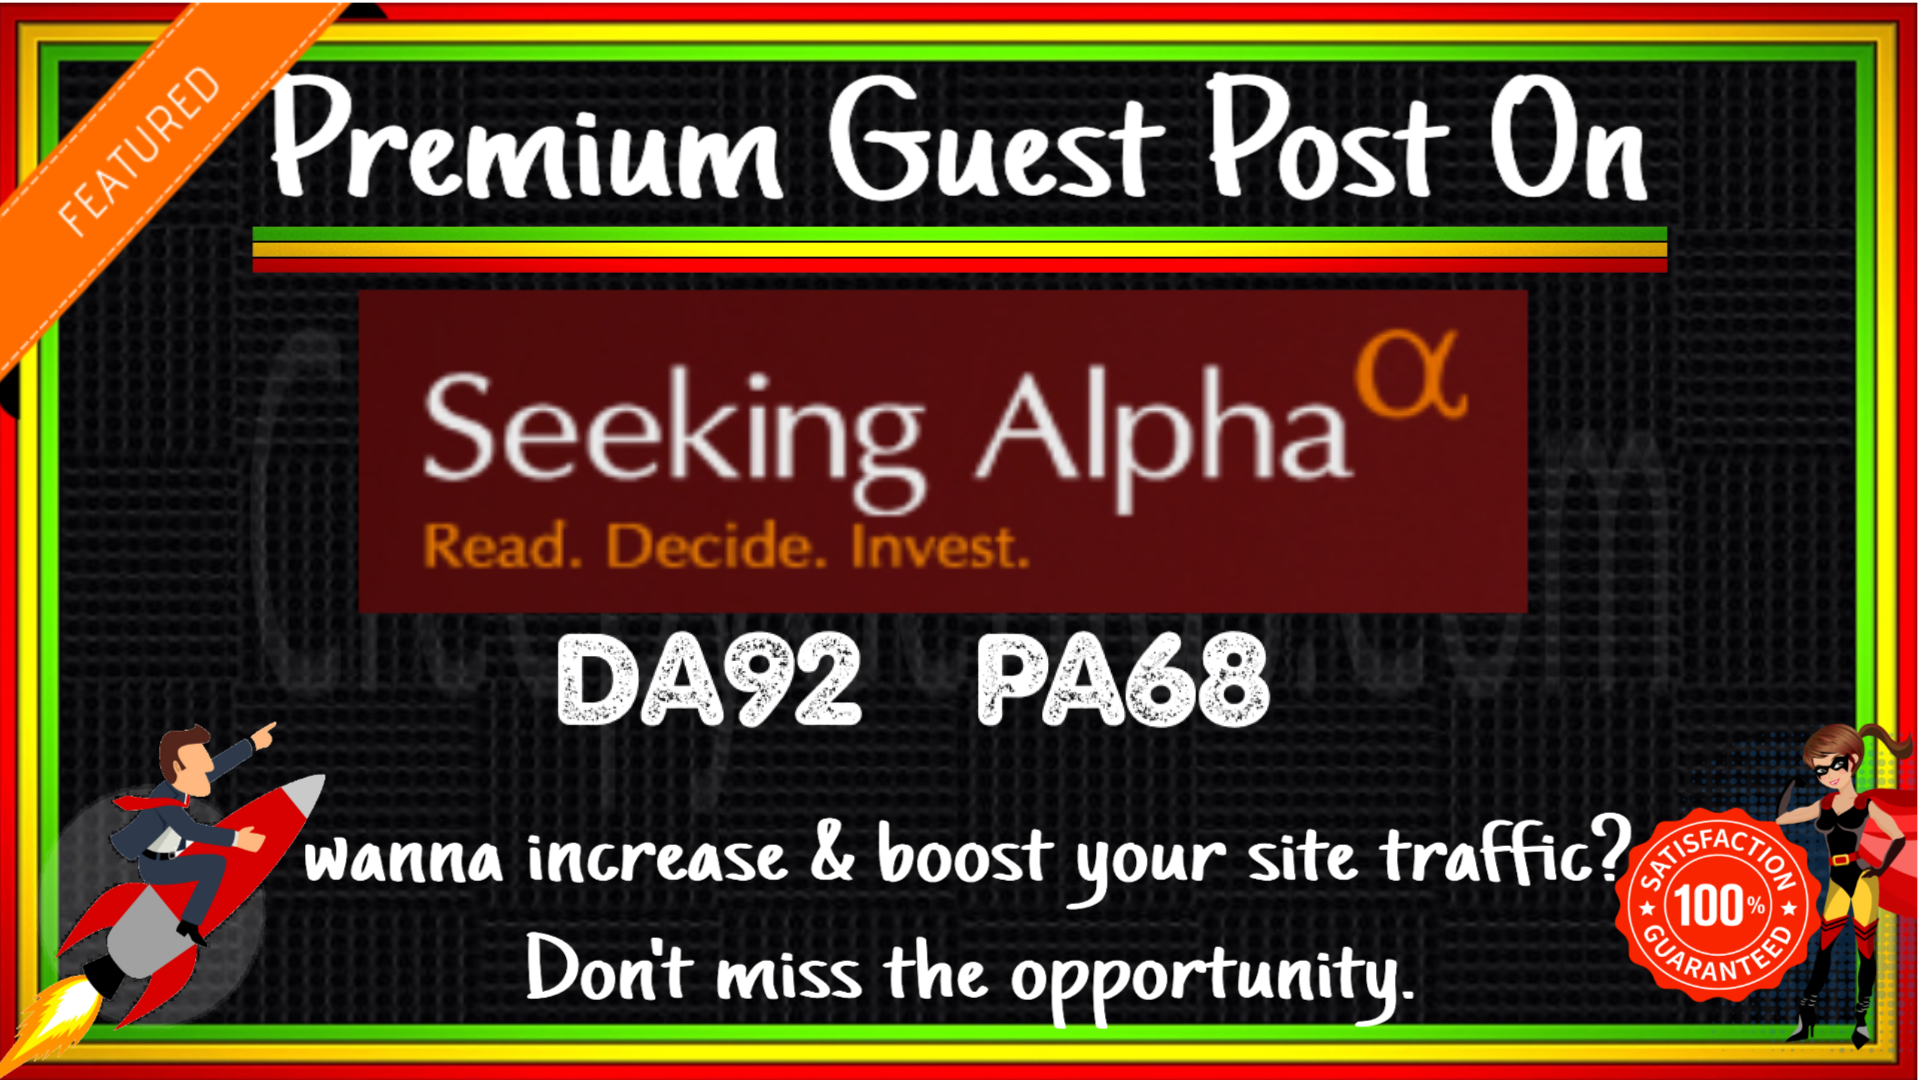 Write & Publish Guest Post On SeekingAlpha. com DA 92 With Indexed Link